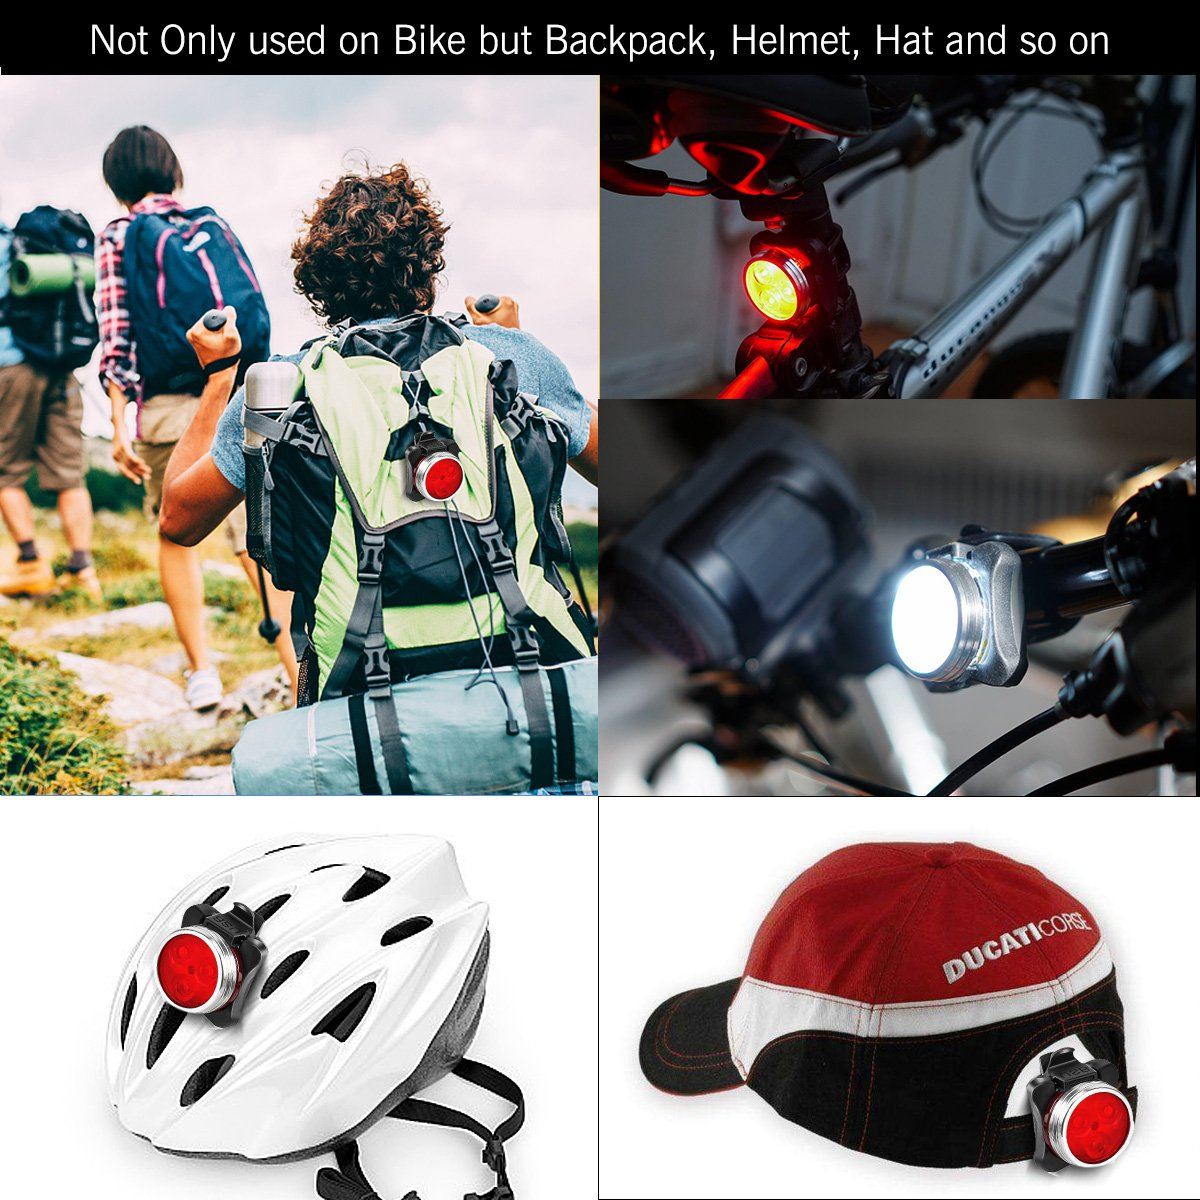 SOKLIT USB Rechargeable Bike Light Front and Rear Waterproof IPX4 Super Bright Bicycle LED Light Set 120 Lumen with 650mah Lithium Battery, 4 Light Mode Options, Including 6 Strap and 2 USB Cables by SOKLIT (Image #6)